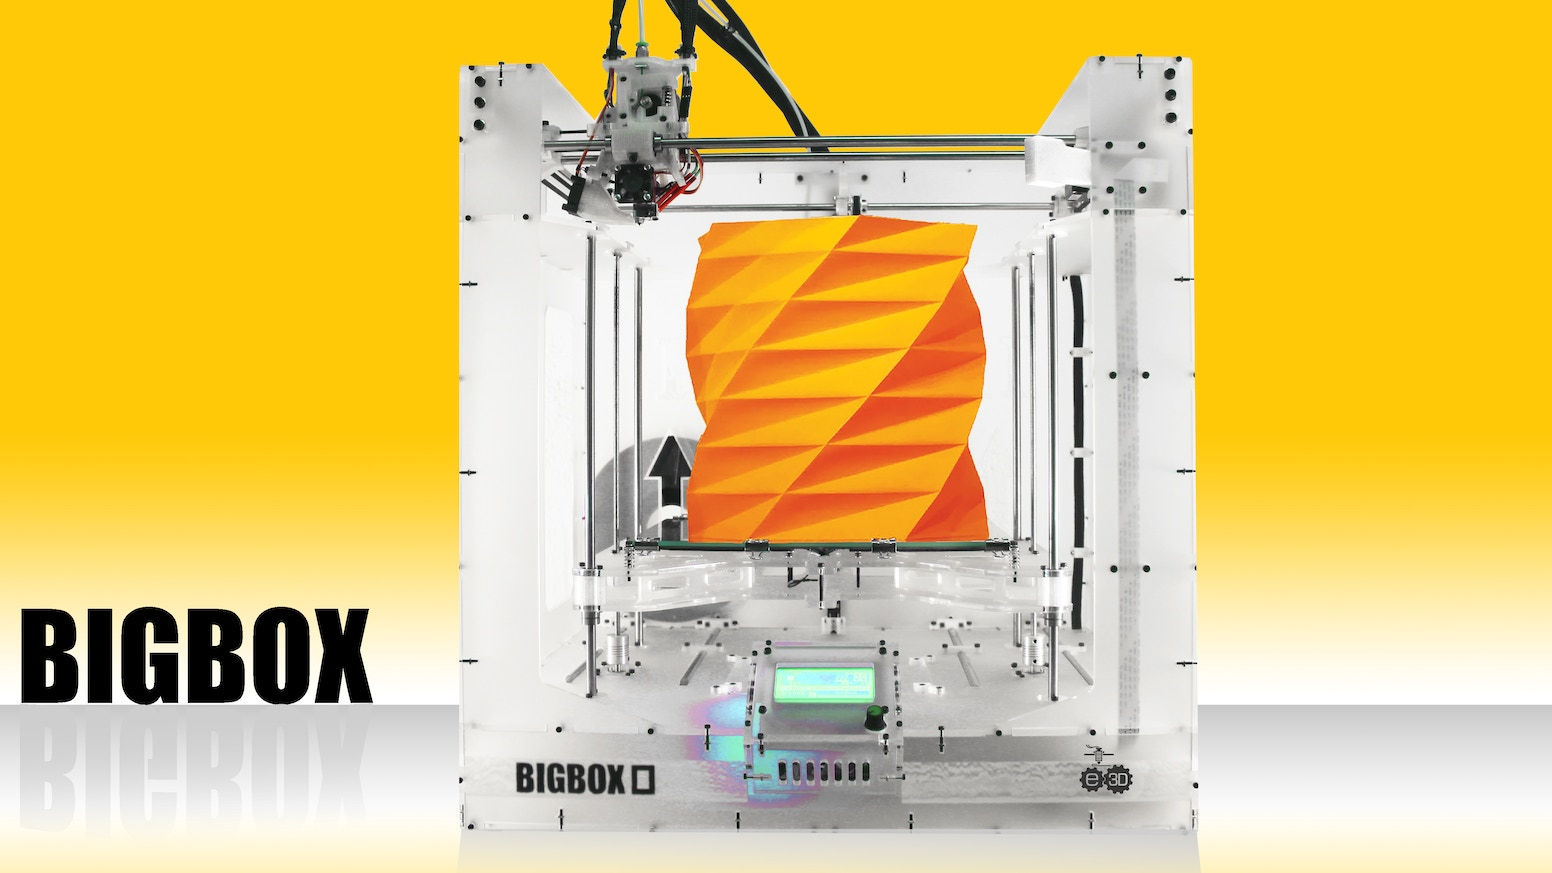 A no-compromise, high-specification 3D-Printer, High Quality, Huge build capacity, OPEN SOURCE, capable of every 3D printing material.